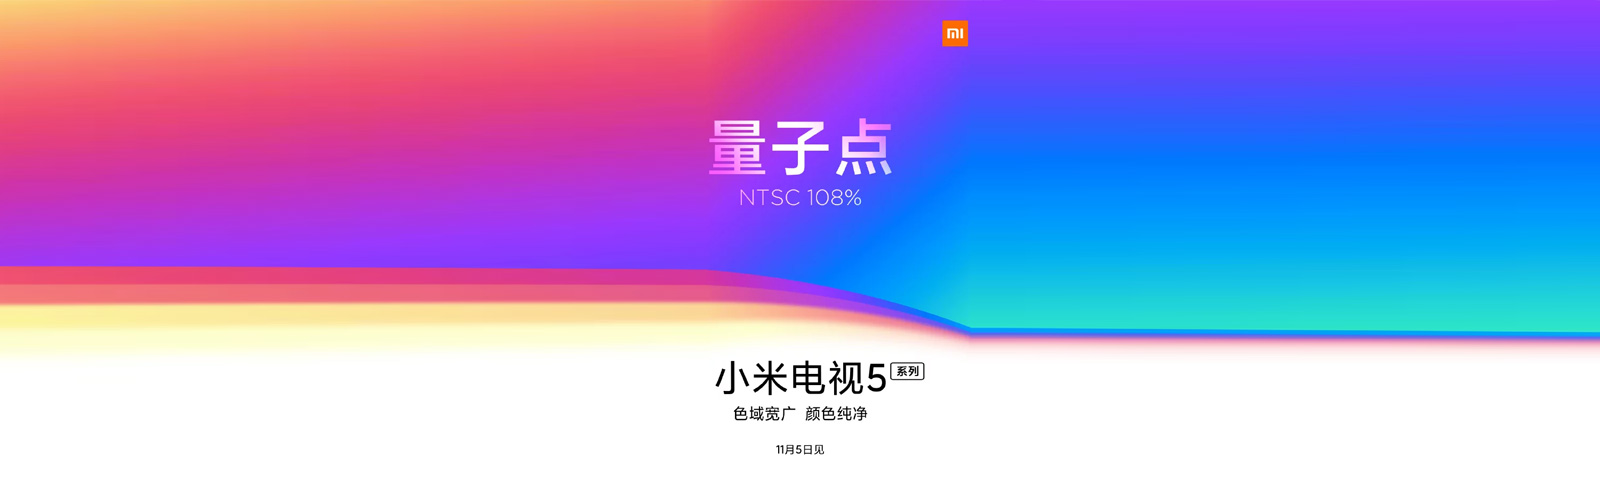 The Xiaomi Mi TV 5 line will include 4K QLED models